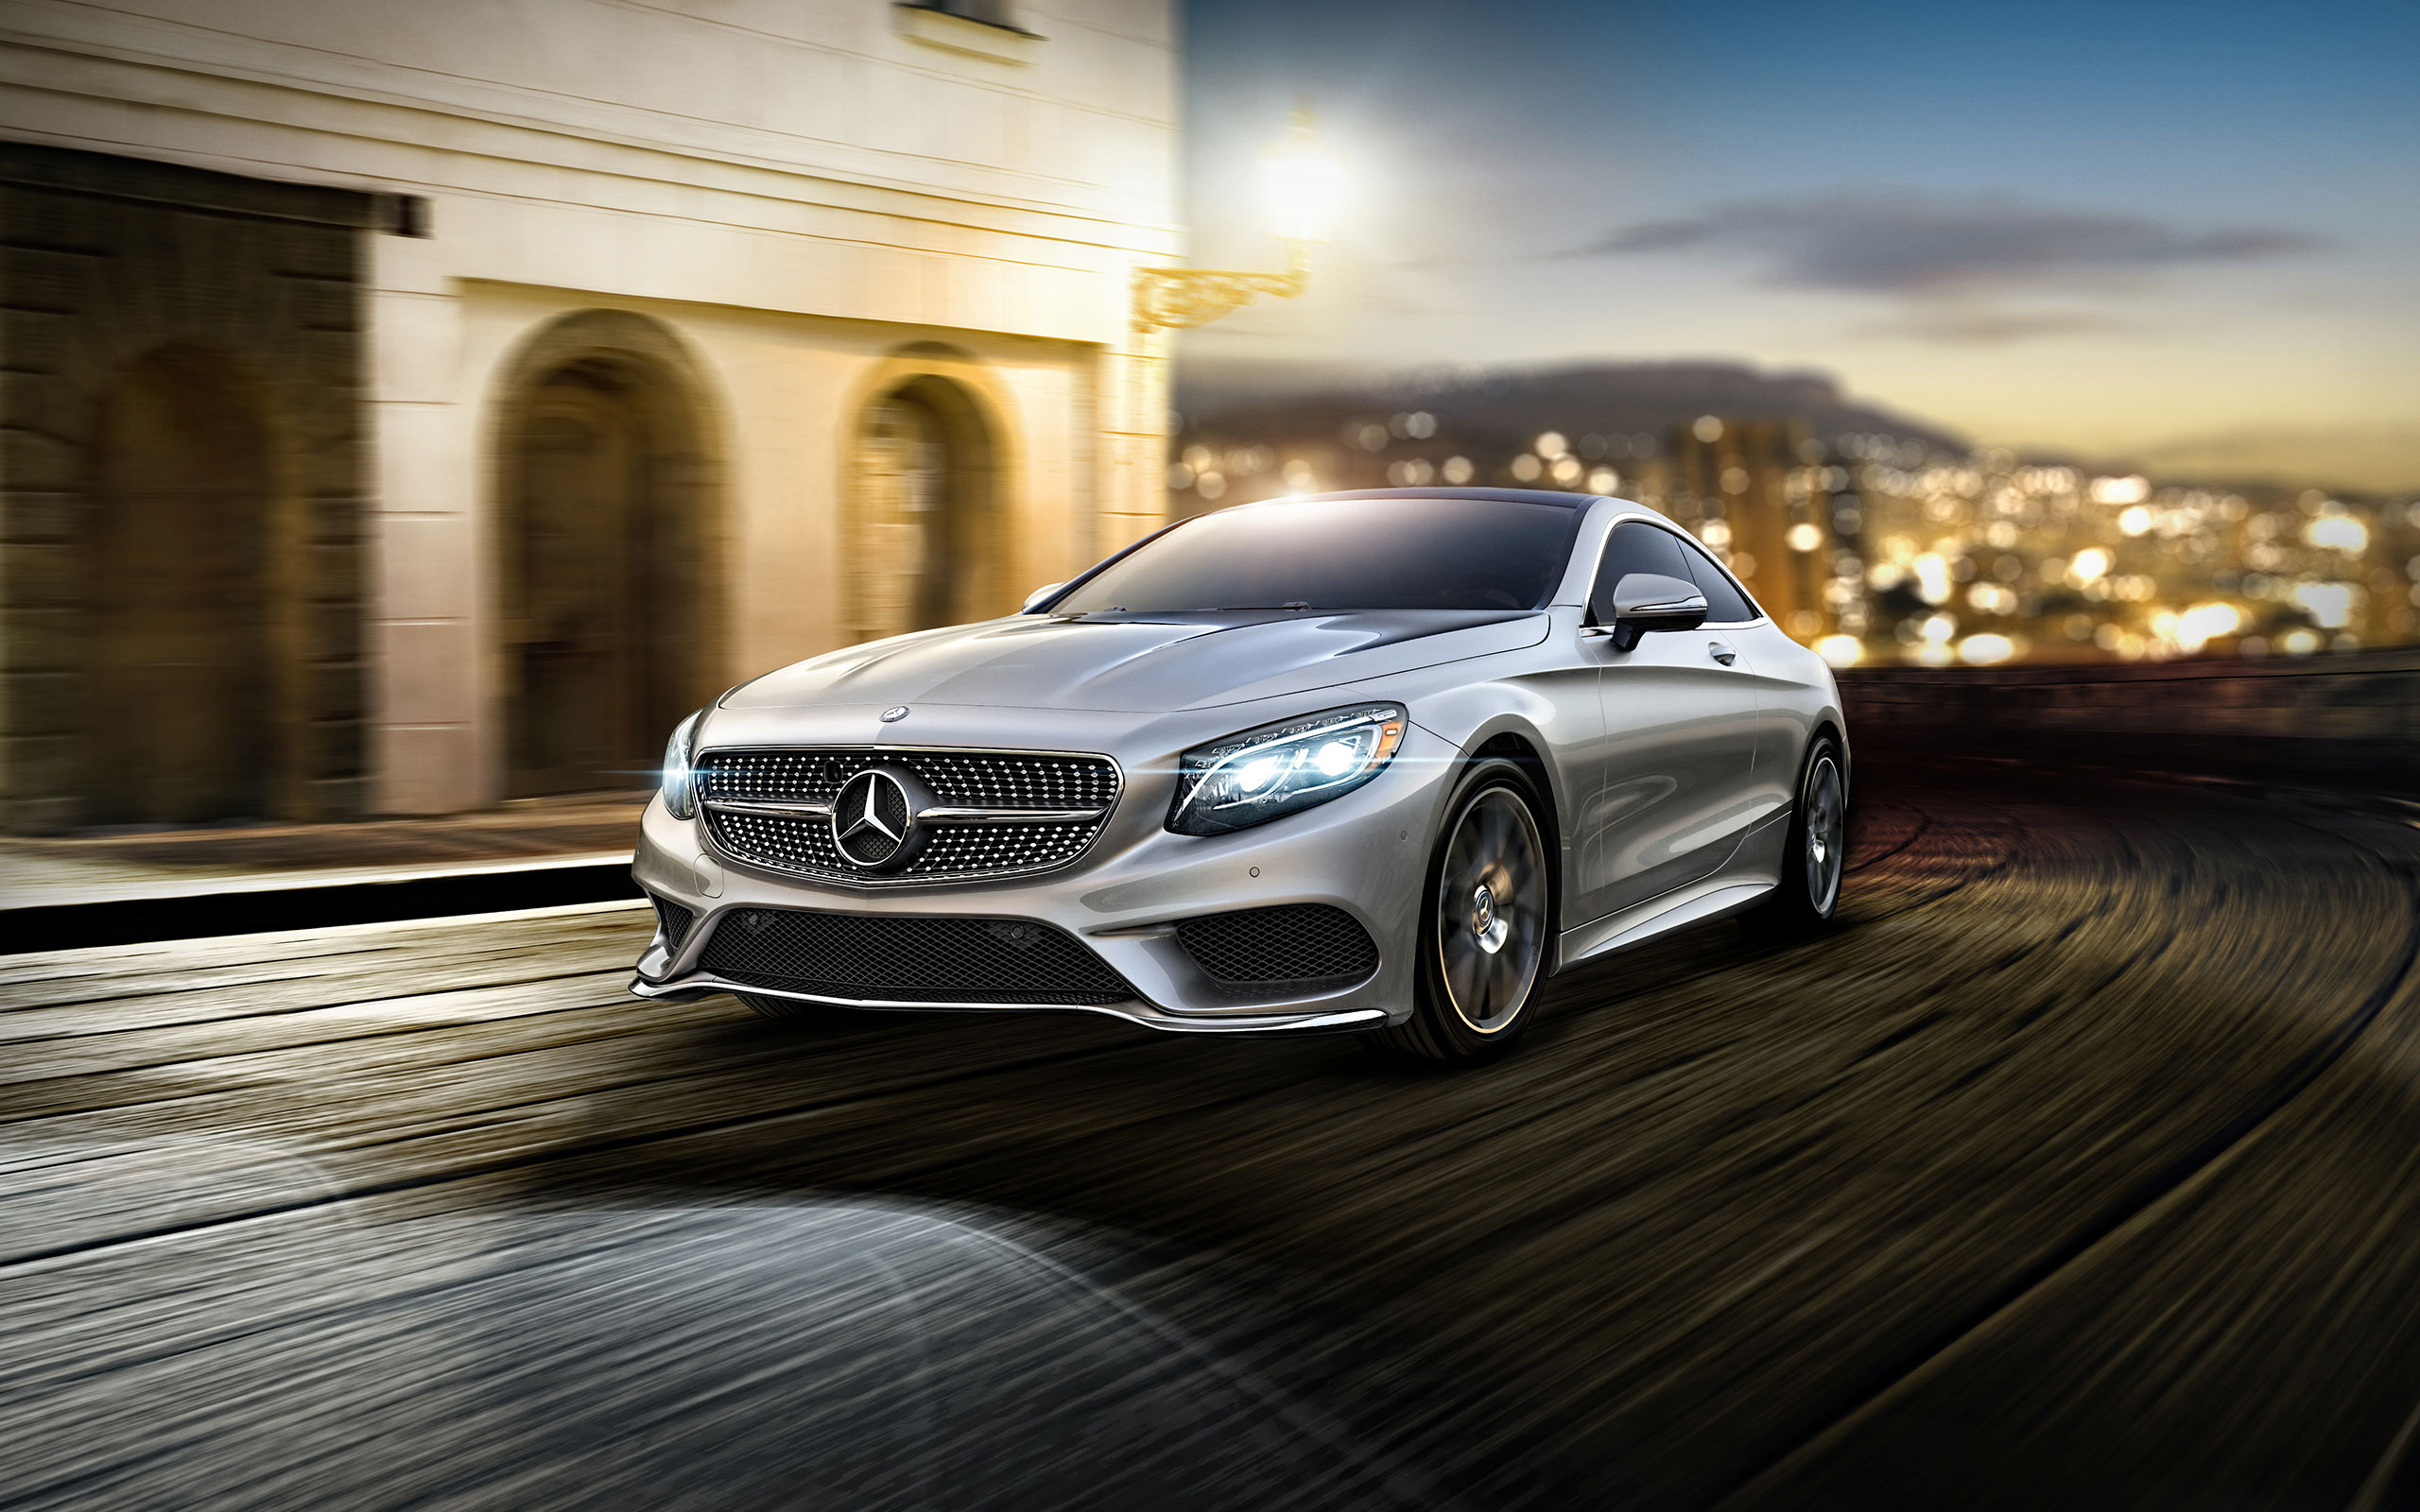 Hd Car Wallpapers Free Download Zip Mercedes S Class Coupe Hd Wallpapers For Desktop Download